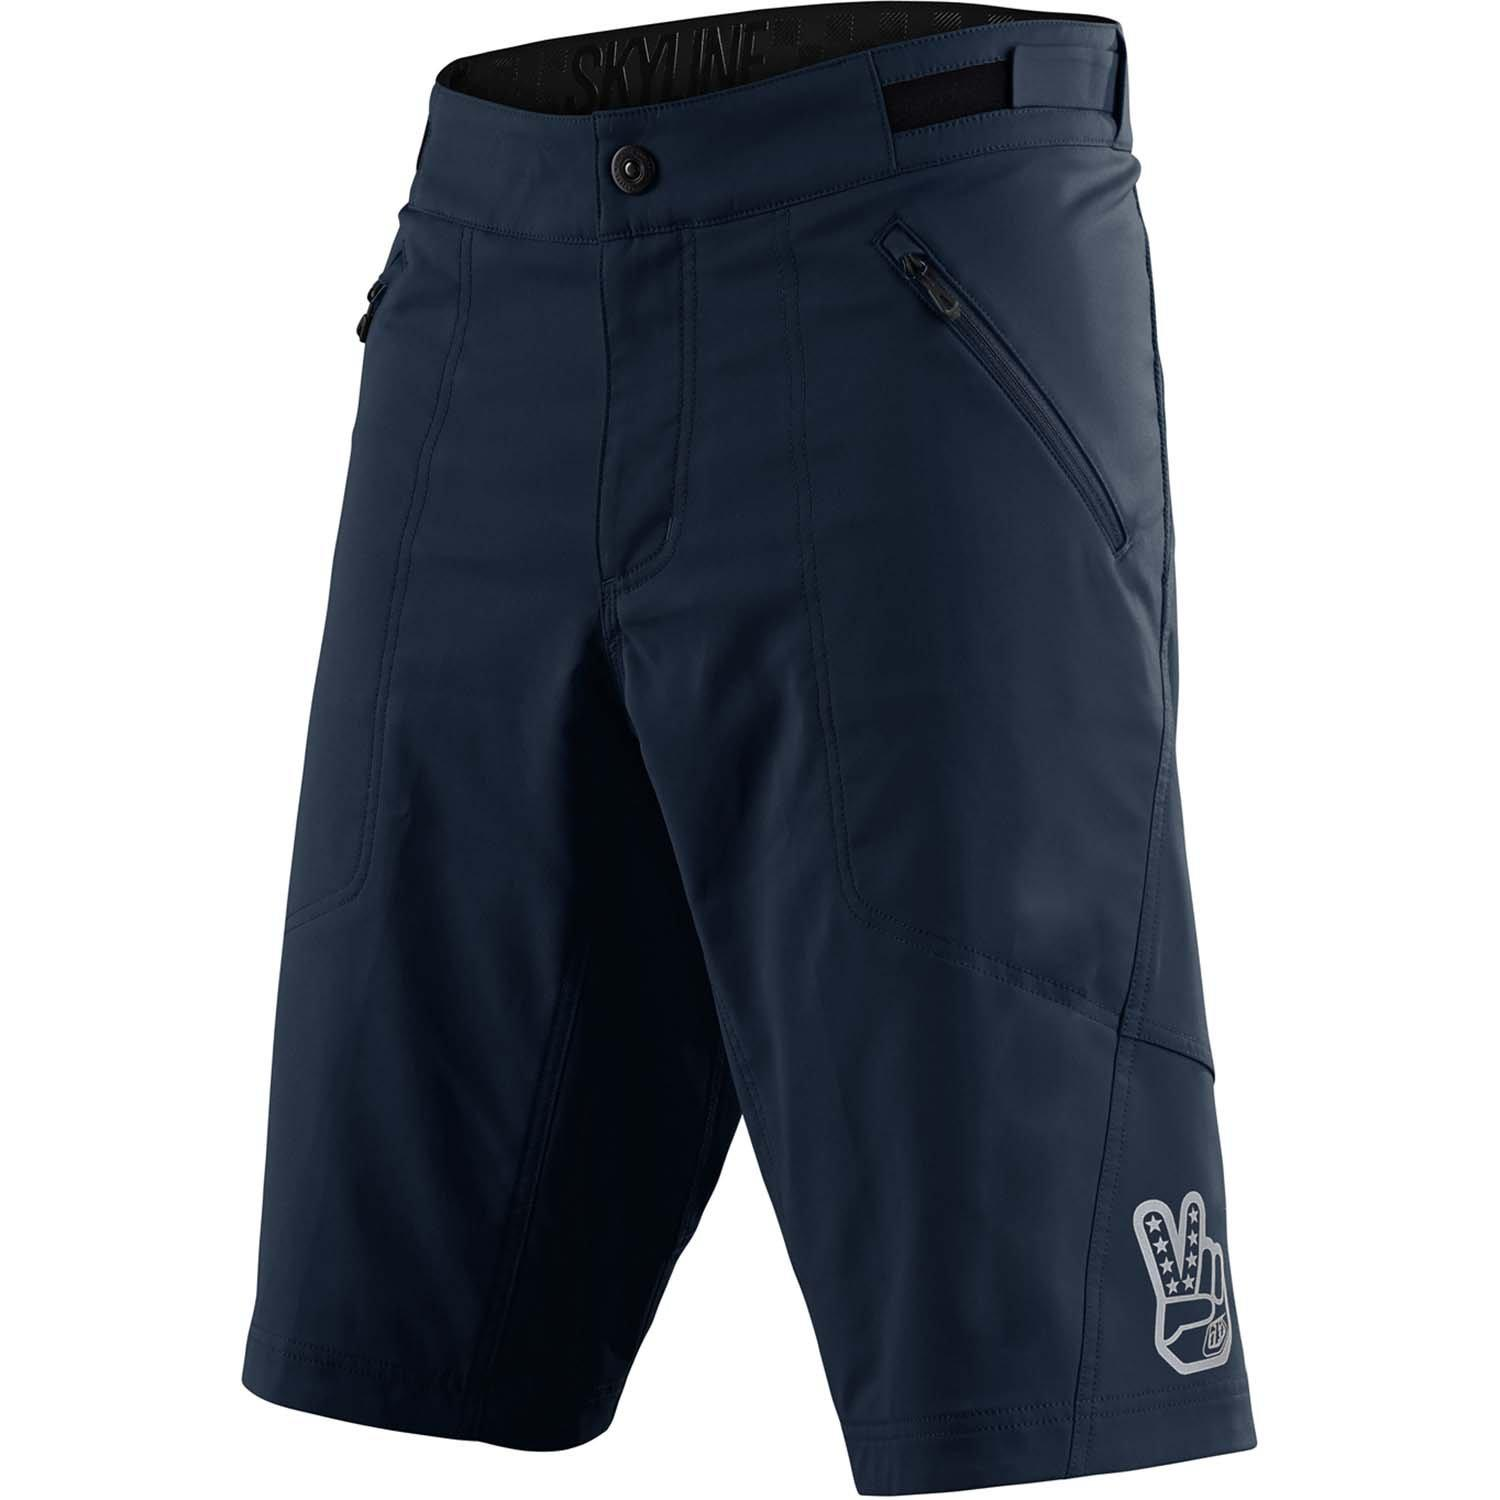 Troy Lee Designs-Troy Lee Designs Skyline Youth Shorts - Shell Only-Marine-Y-22-TLD228268013-saddleback-elite-performance-cycling